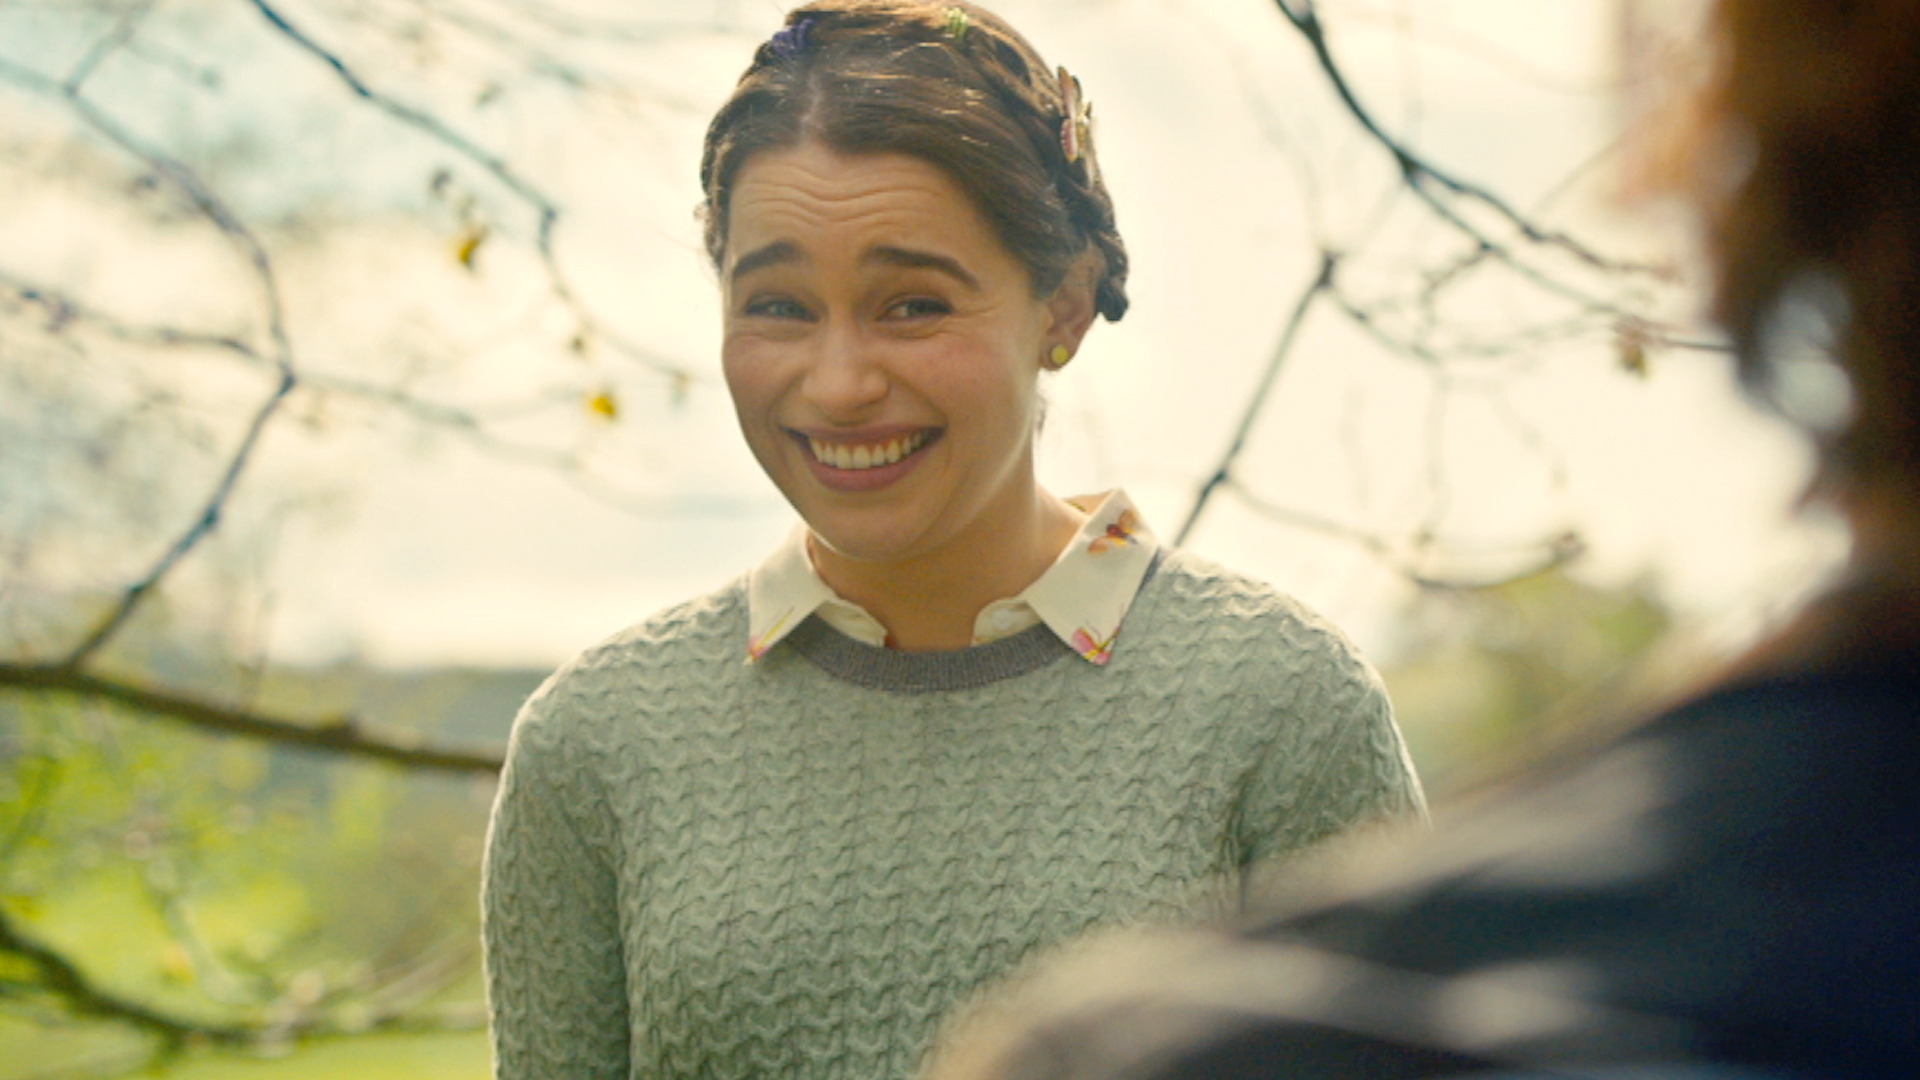 Me before you movie release date in Australia